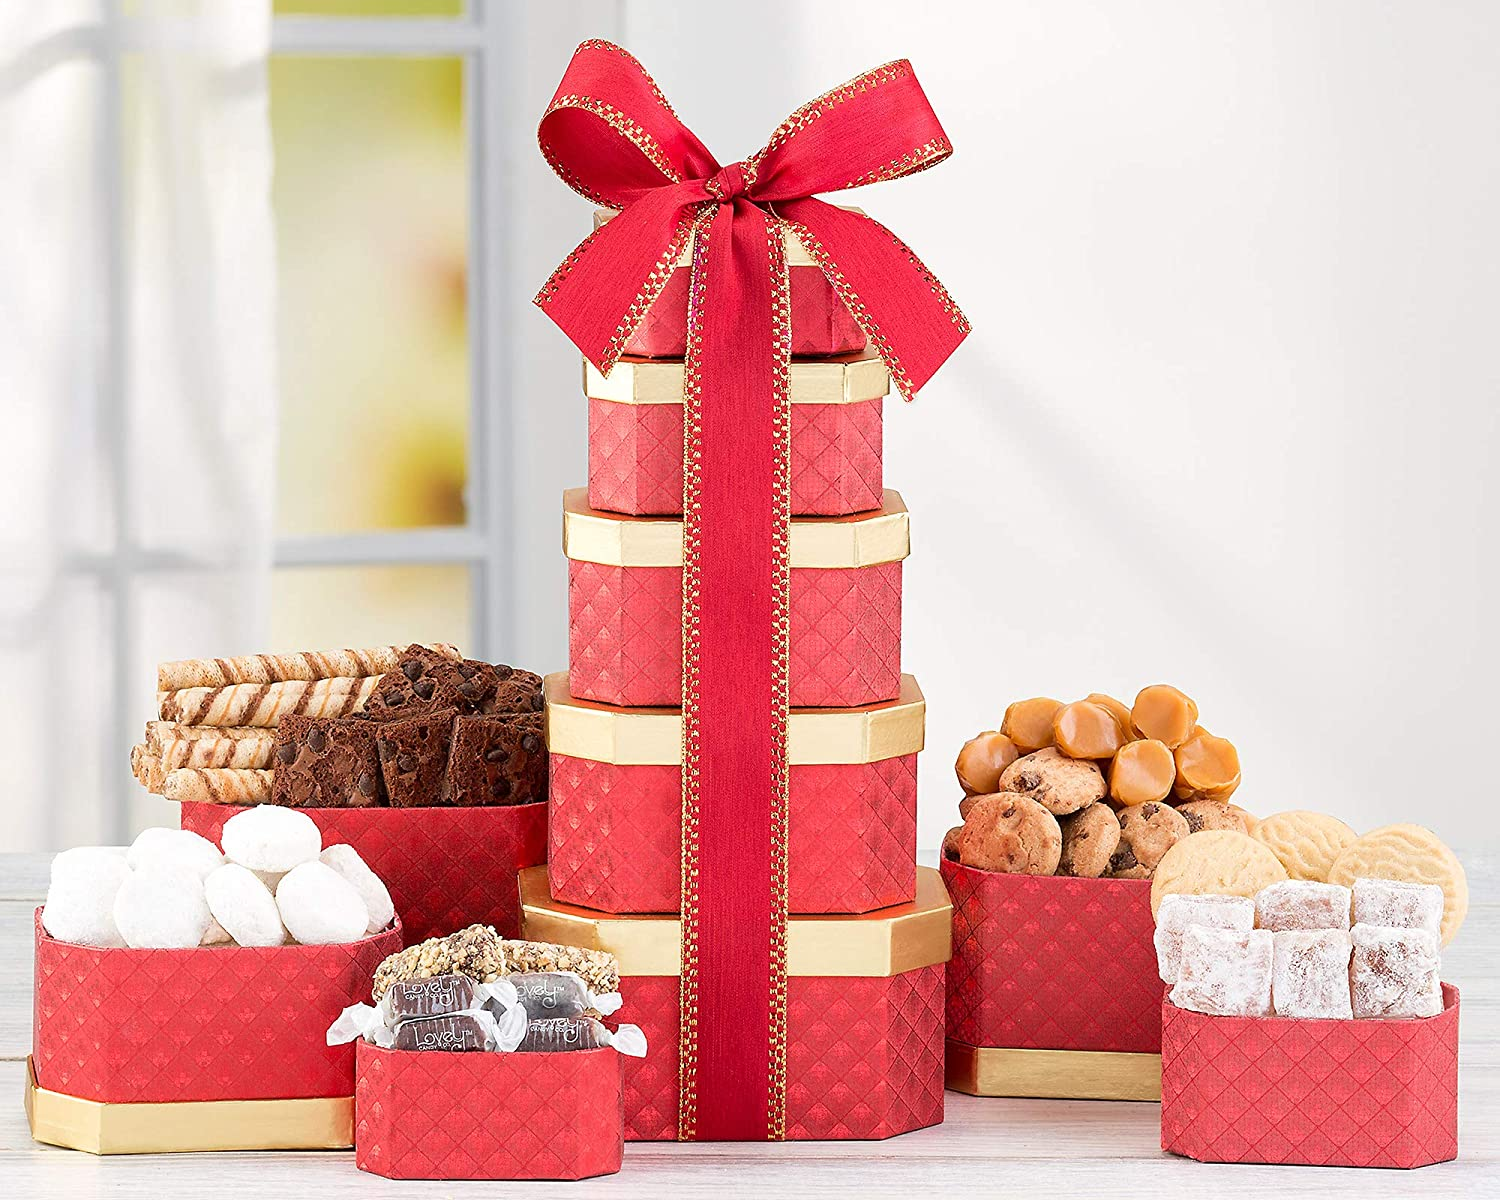 Amazon.com : Truffle, Cookie & Chocolate Holiday Gift Tower By Wine Country Gift Basket Loaded With Lindt Lindor, Yves Thuries and More!